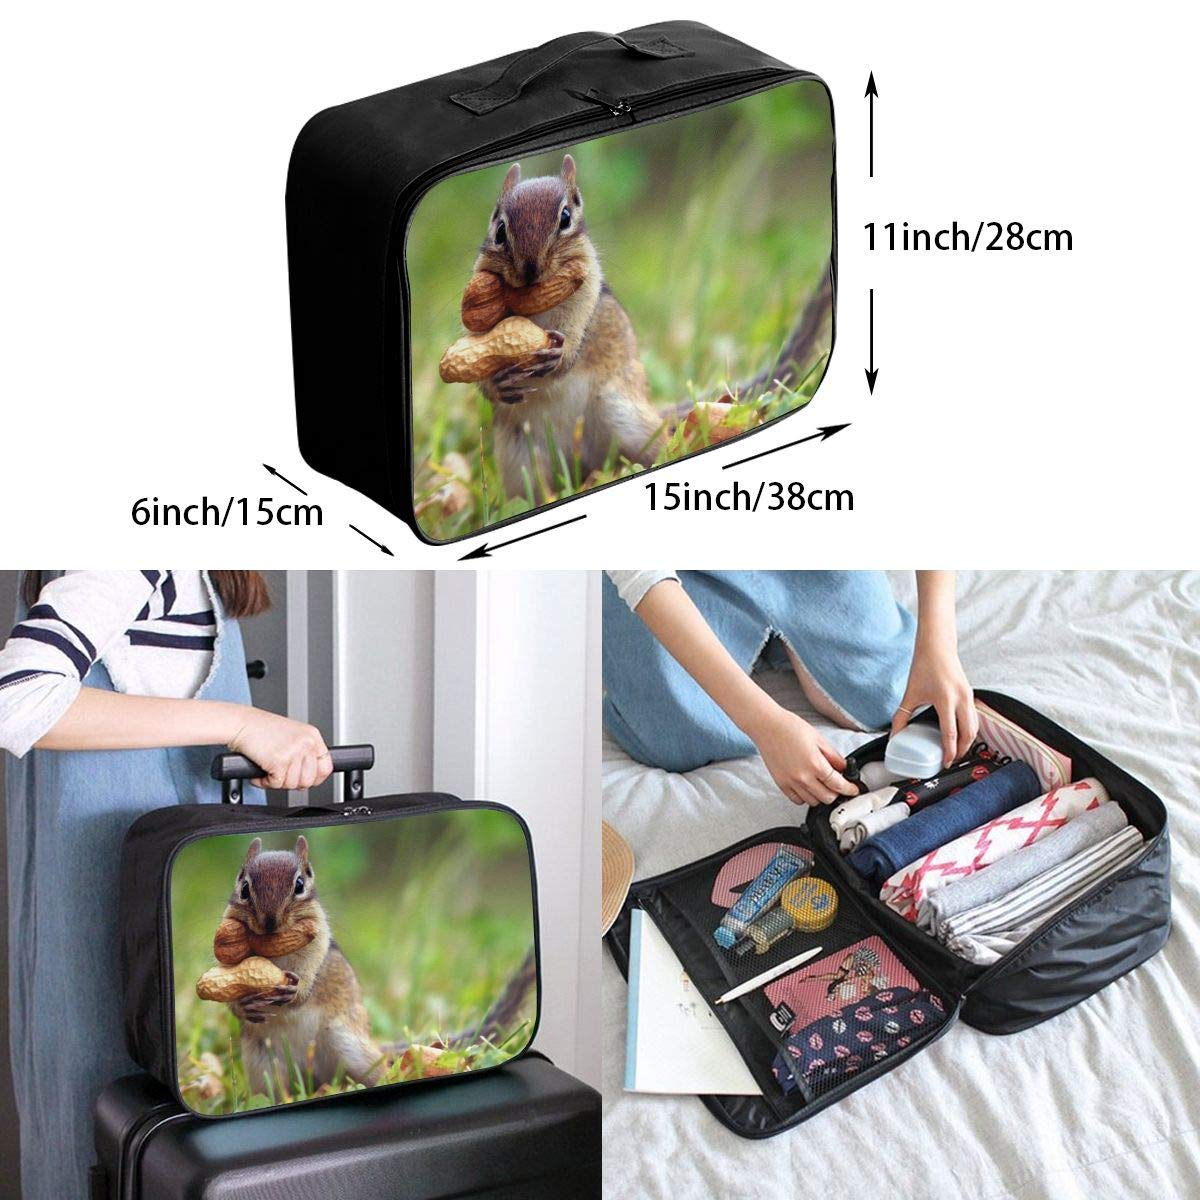 Lightweight Large Capacity Portable Luggage Bag Funny Squirrel Eat Peanuts Travel Duffel Bag Backpack